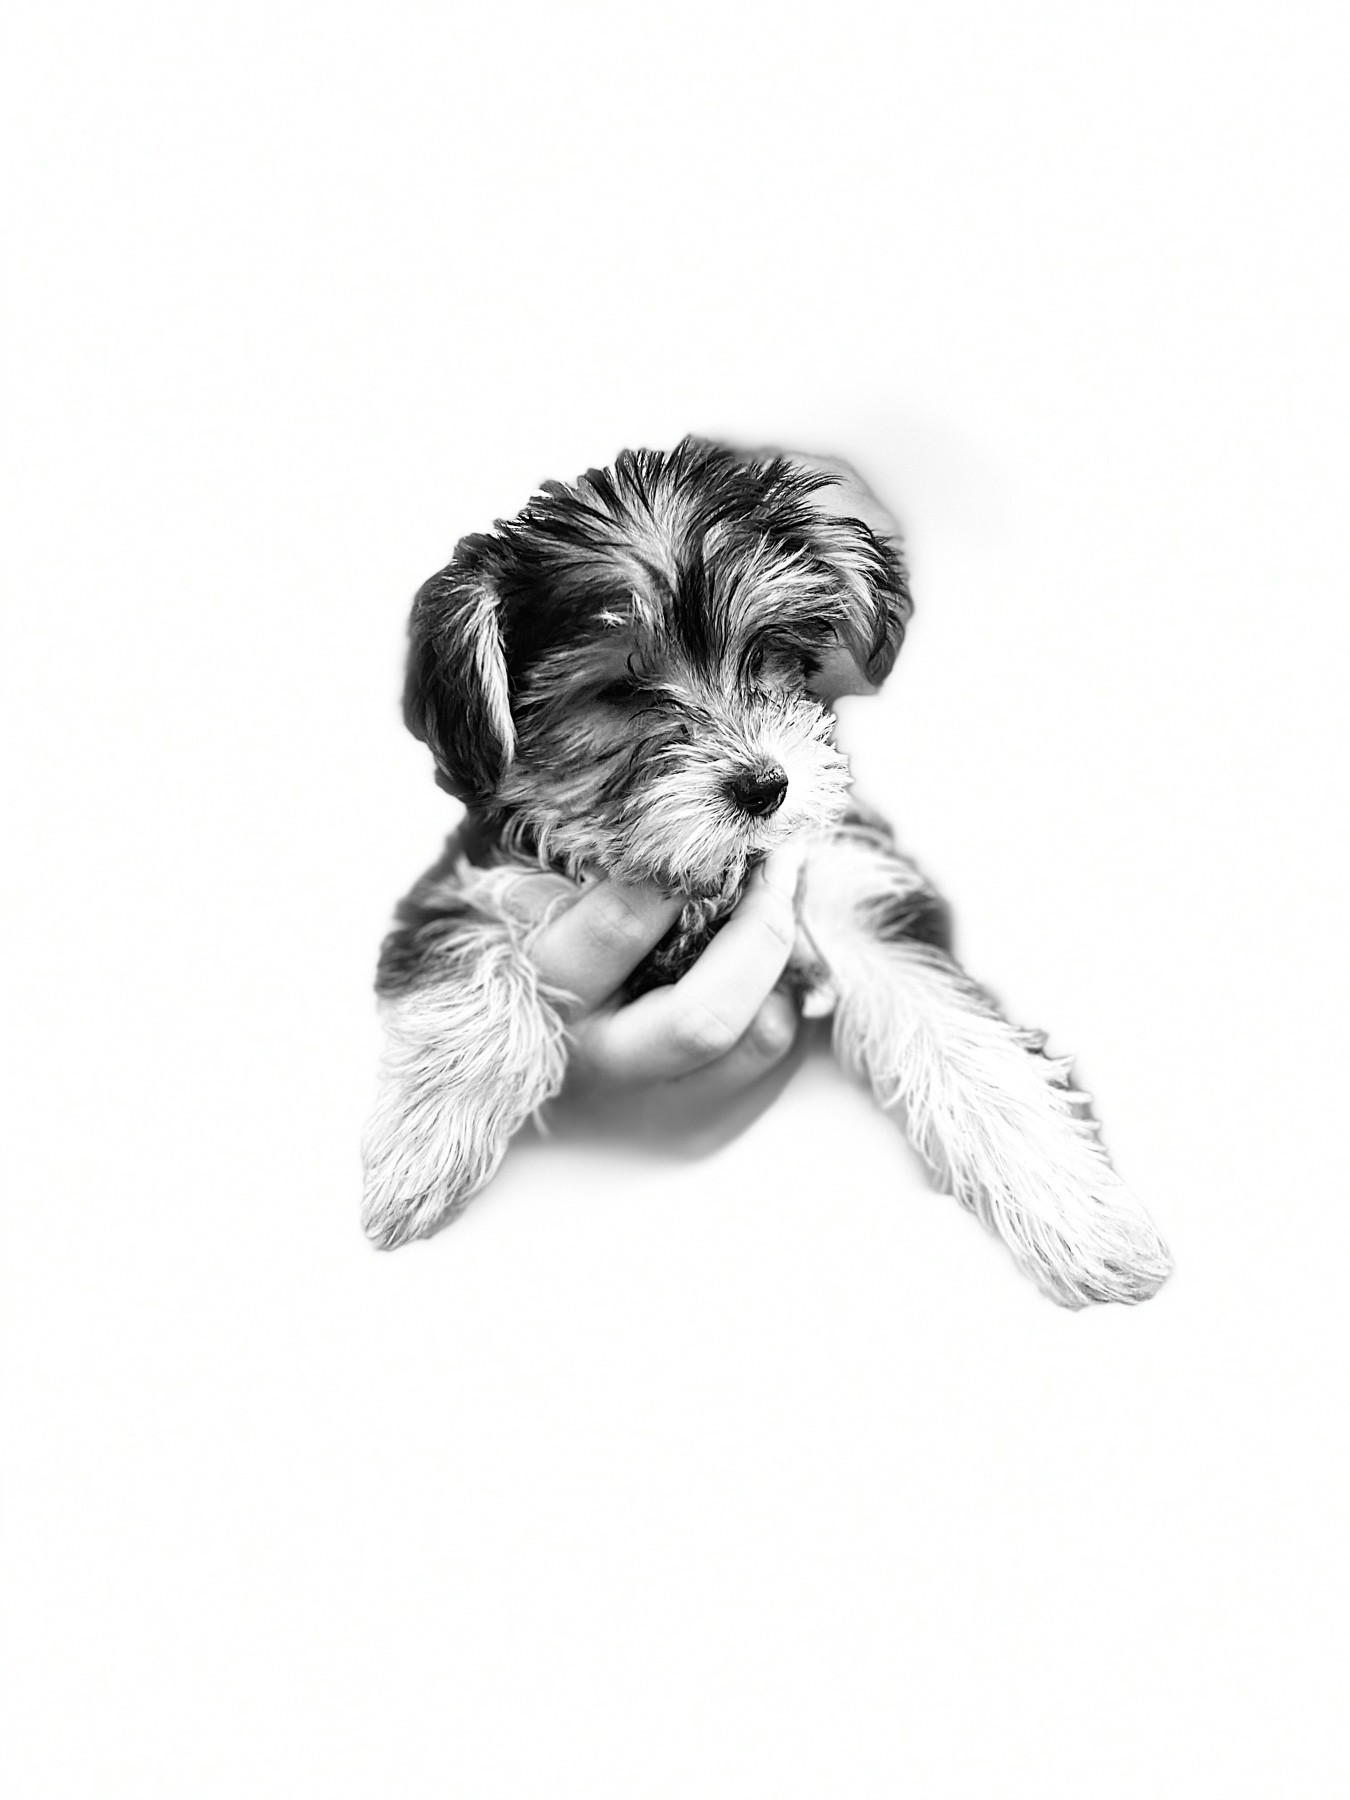 a high-contrast, black and white photo of a puppy being held out in one hand by its owner